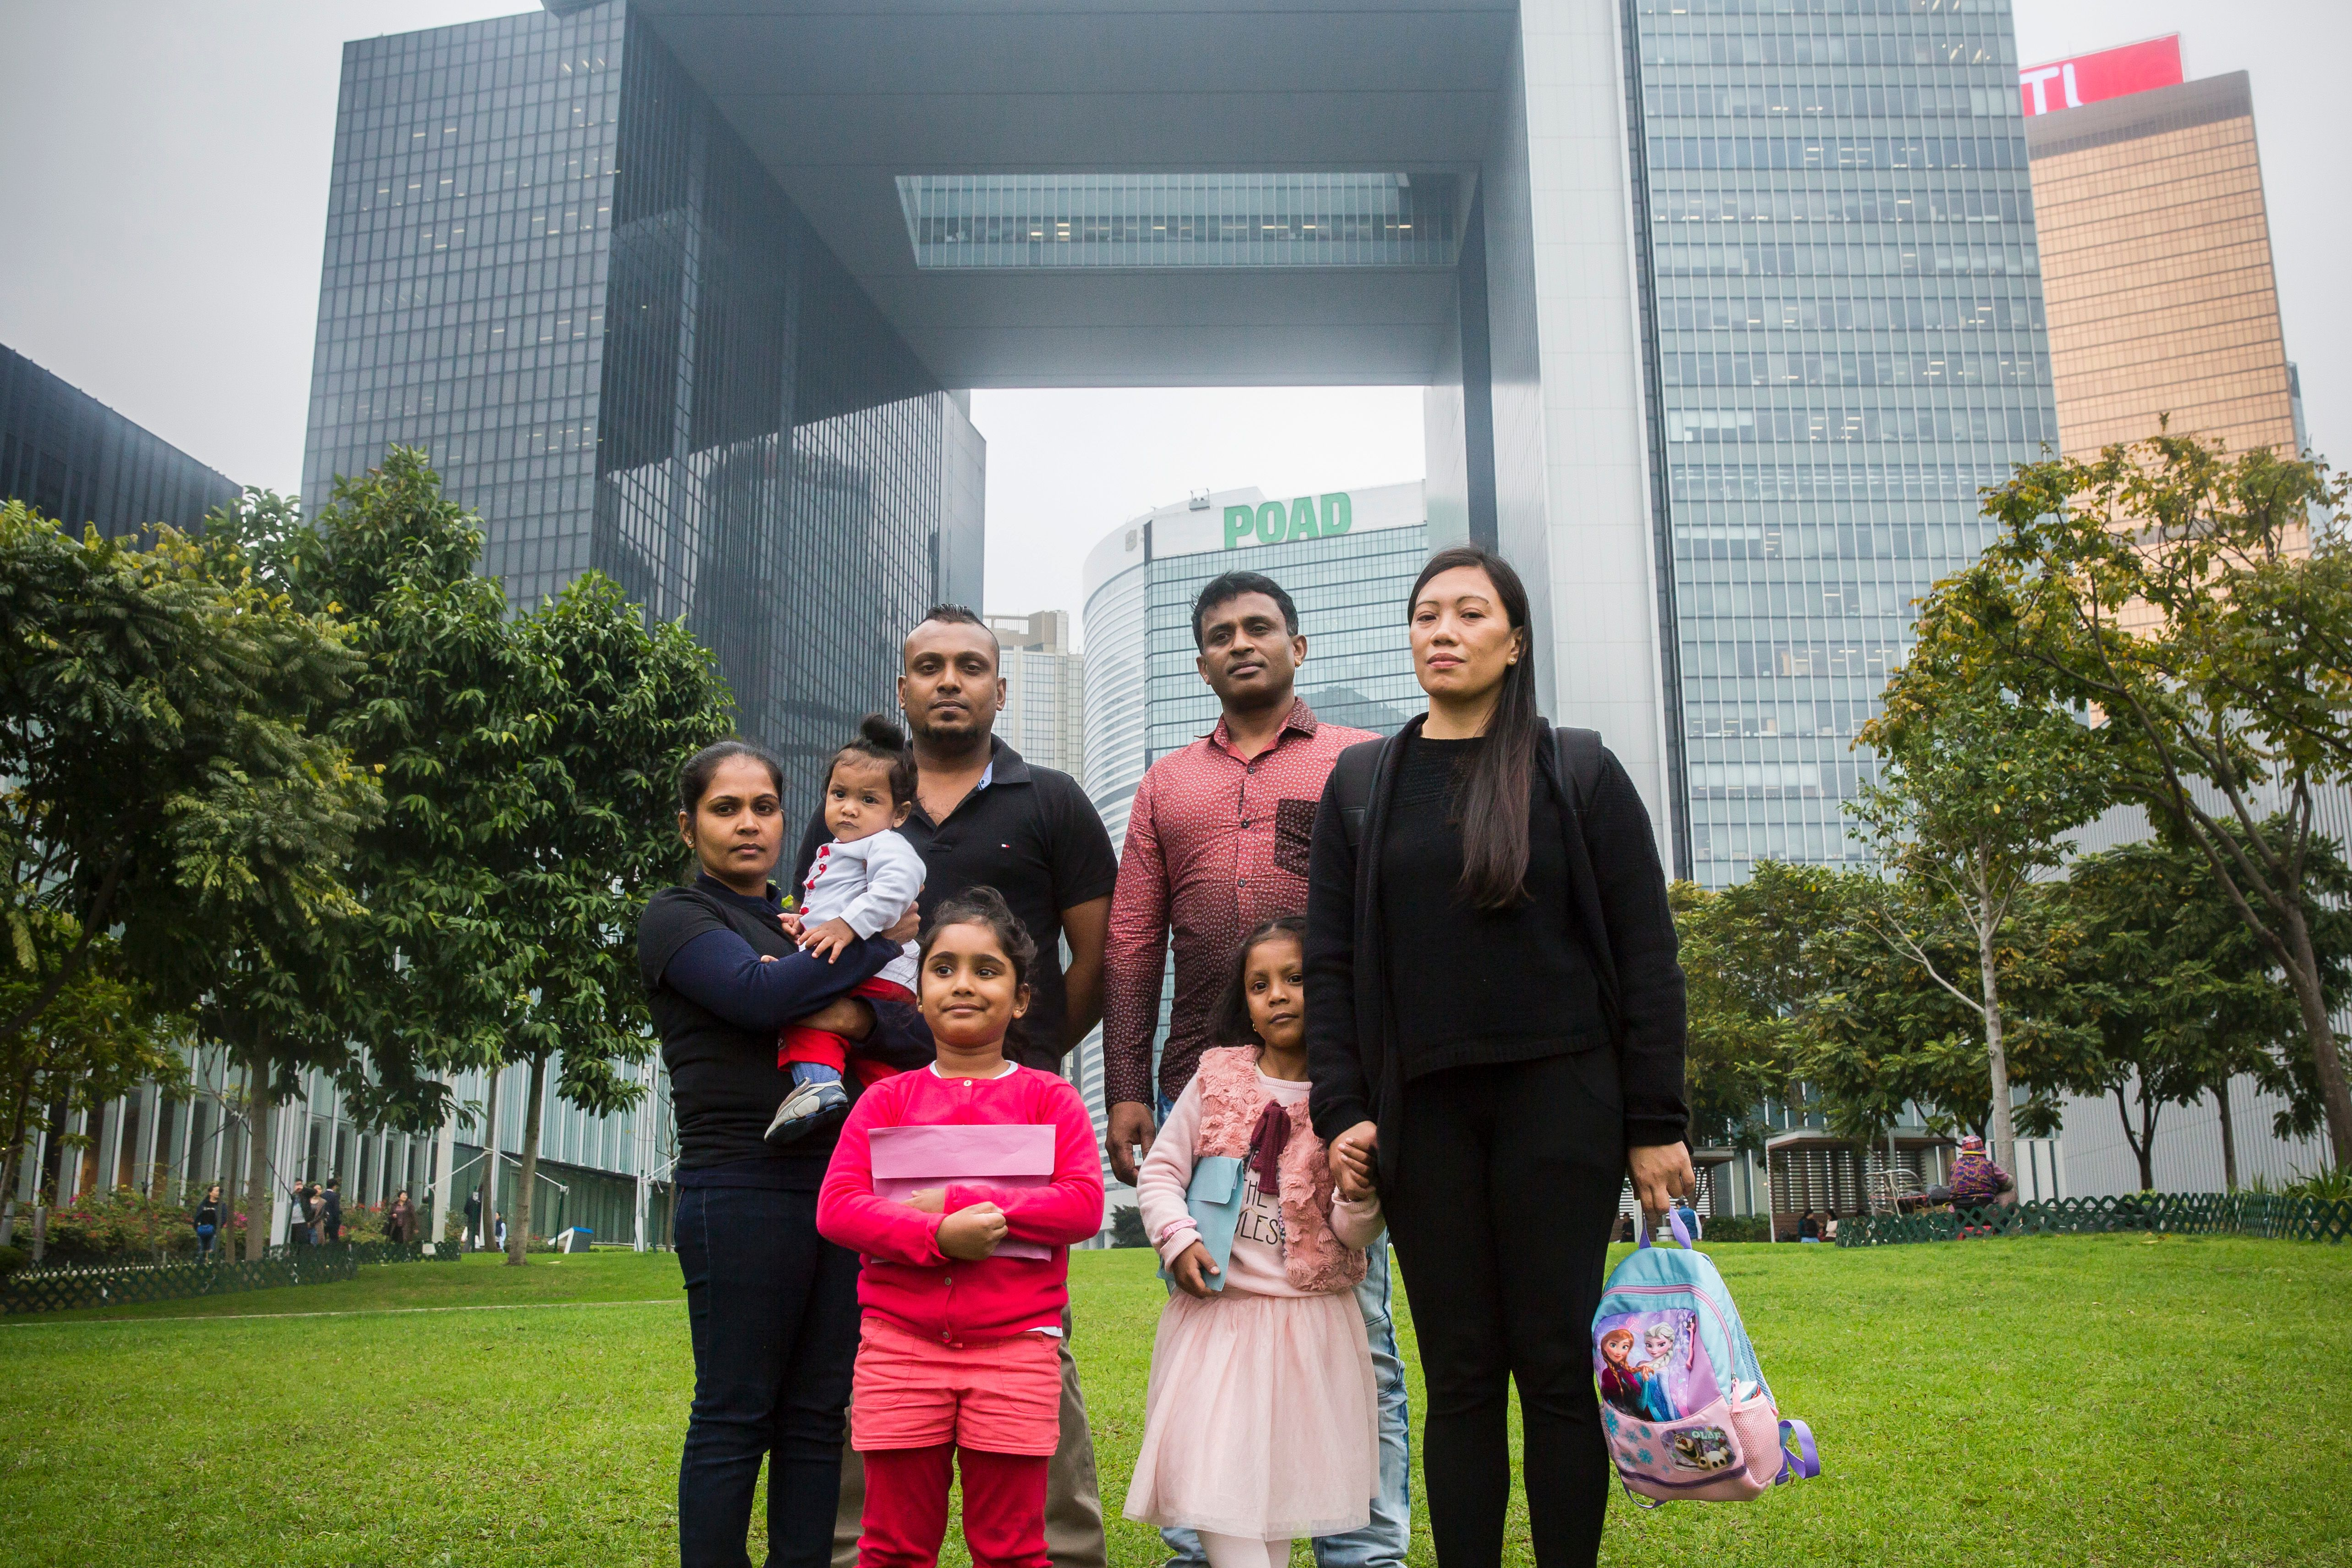 Sri Lankan refugee Supun Thilina Kellapatha (3rd L), 32, his partner Nadeeka (L), 33, with their baby boy Dinath, daughter Sethumdi, 5, Sri Lankan refugee Ajith Puspa (3rd R), 45, and Filipino refugee Vanessa Rodel (R), 40, with her daughter Keana, 5, pose for a photo in front of the government buildings of Hong Kong on Feb. 23, 2017, after attending a press conference where they said Sri Lankan Criminal Investigation Division (CID) is searching for them.